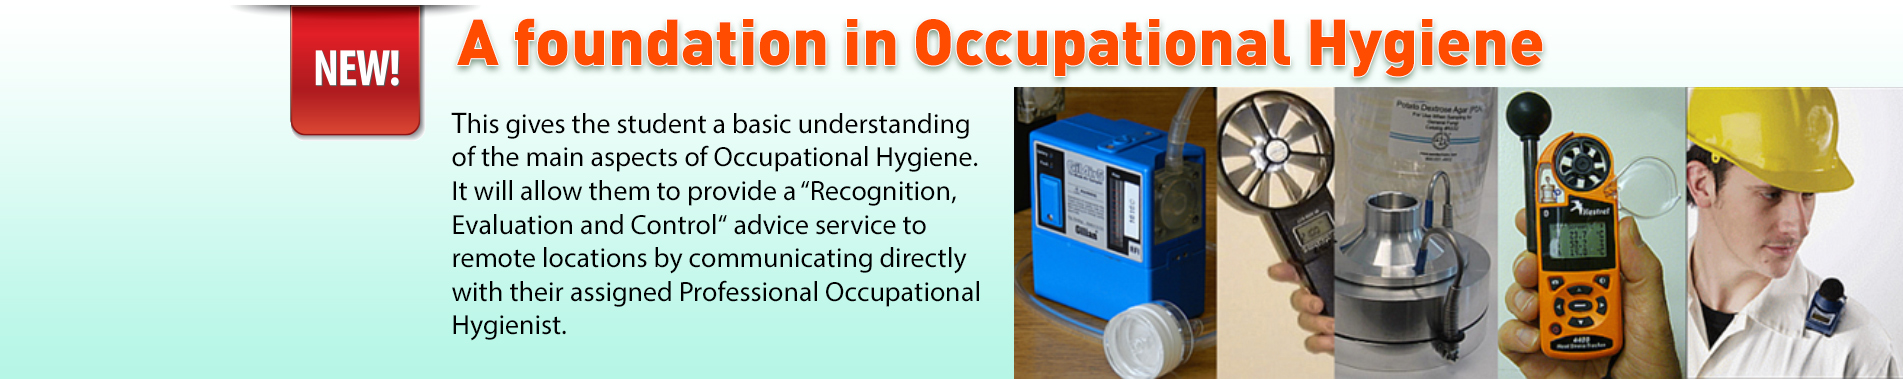 Foundation-in-Occupational-Hygiene-main-iqarus-s